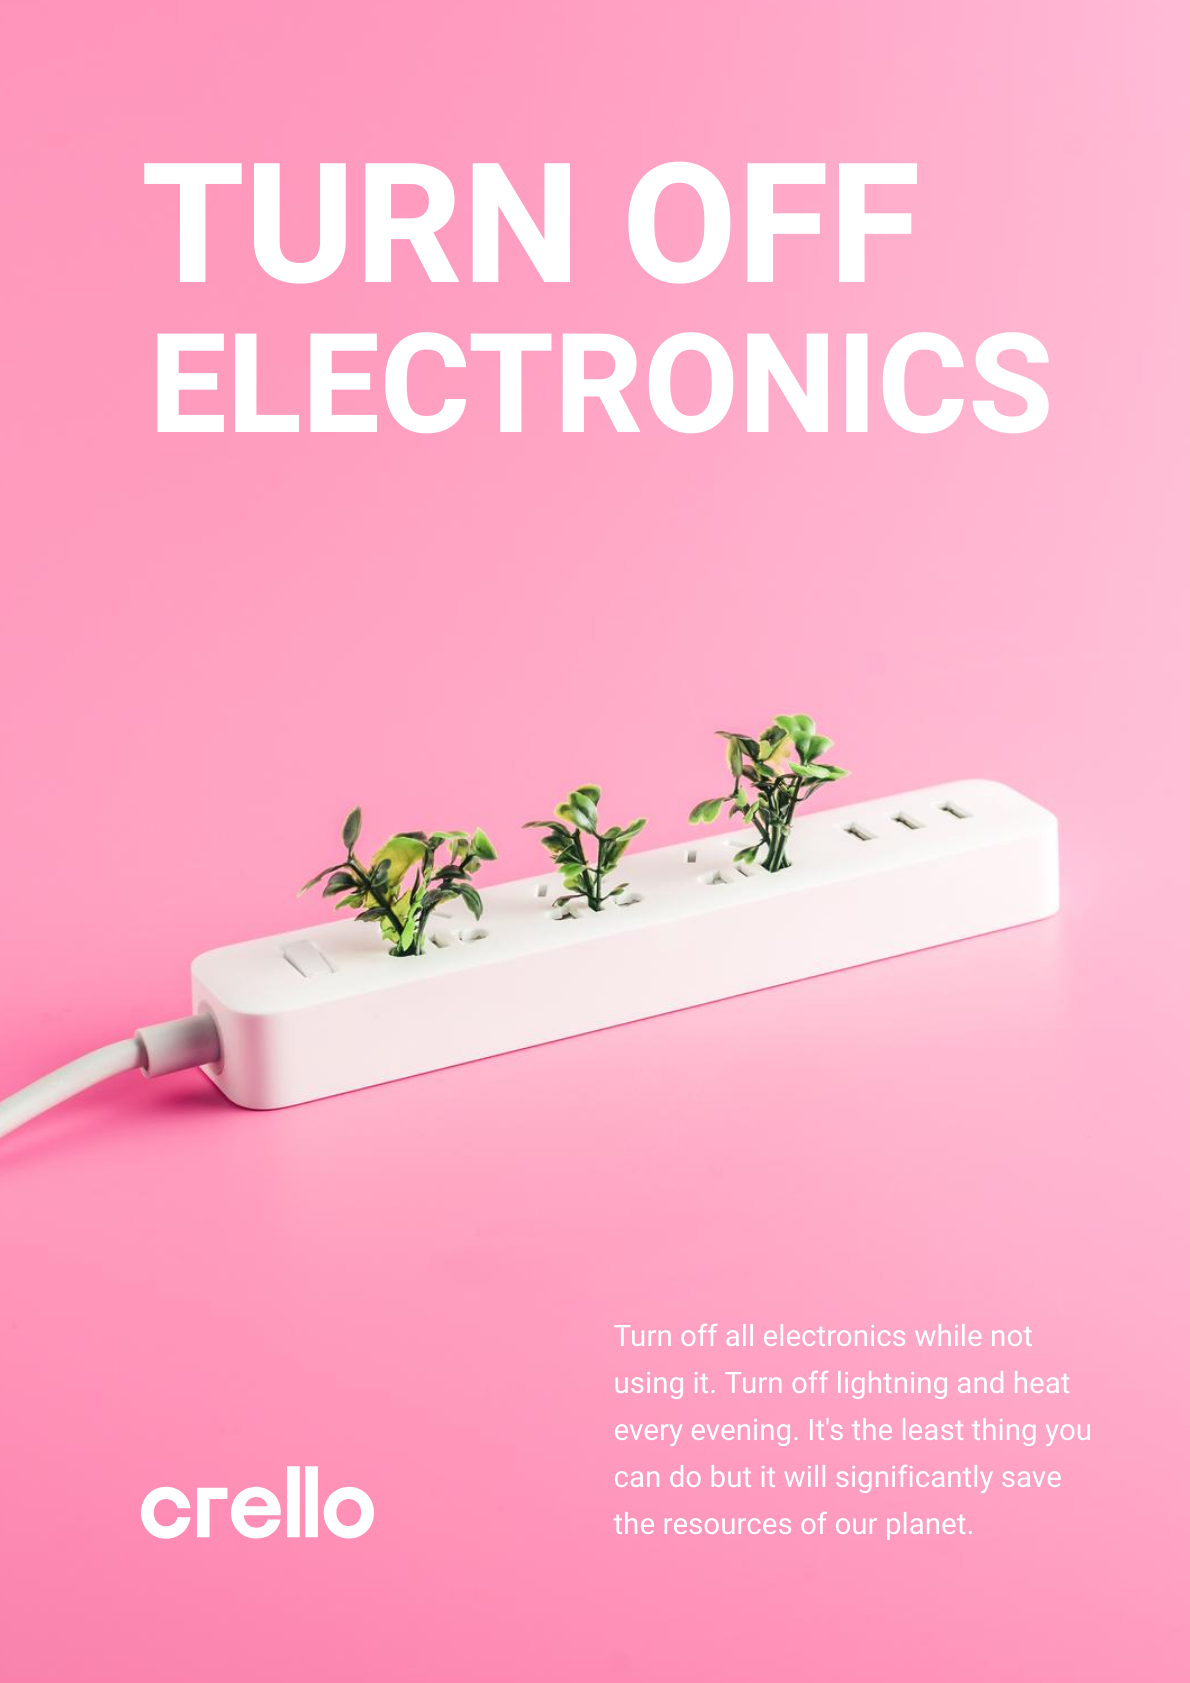 Turn Off Electronics Poster Electronics Poster Environmental Posters Abstract Pattern Design